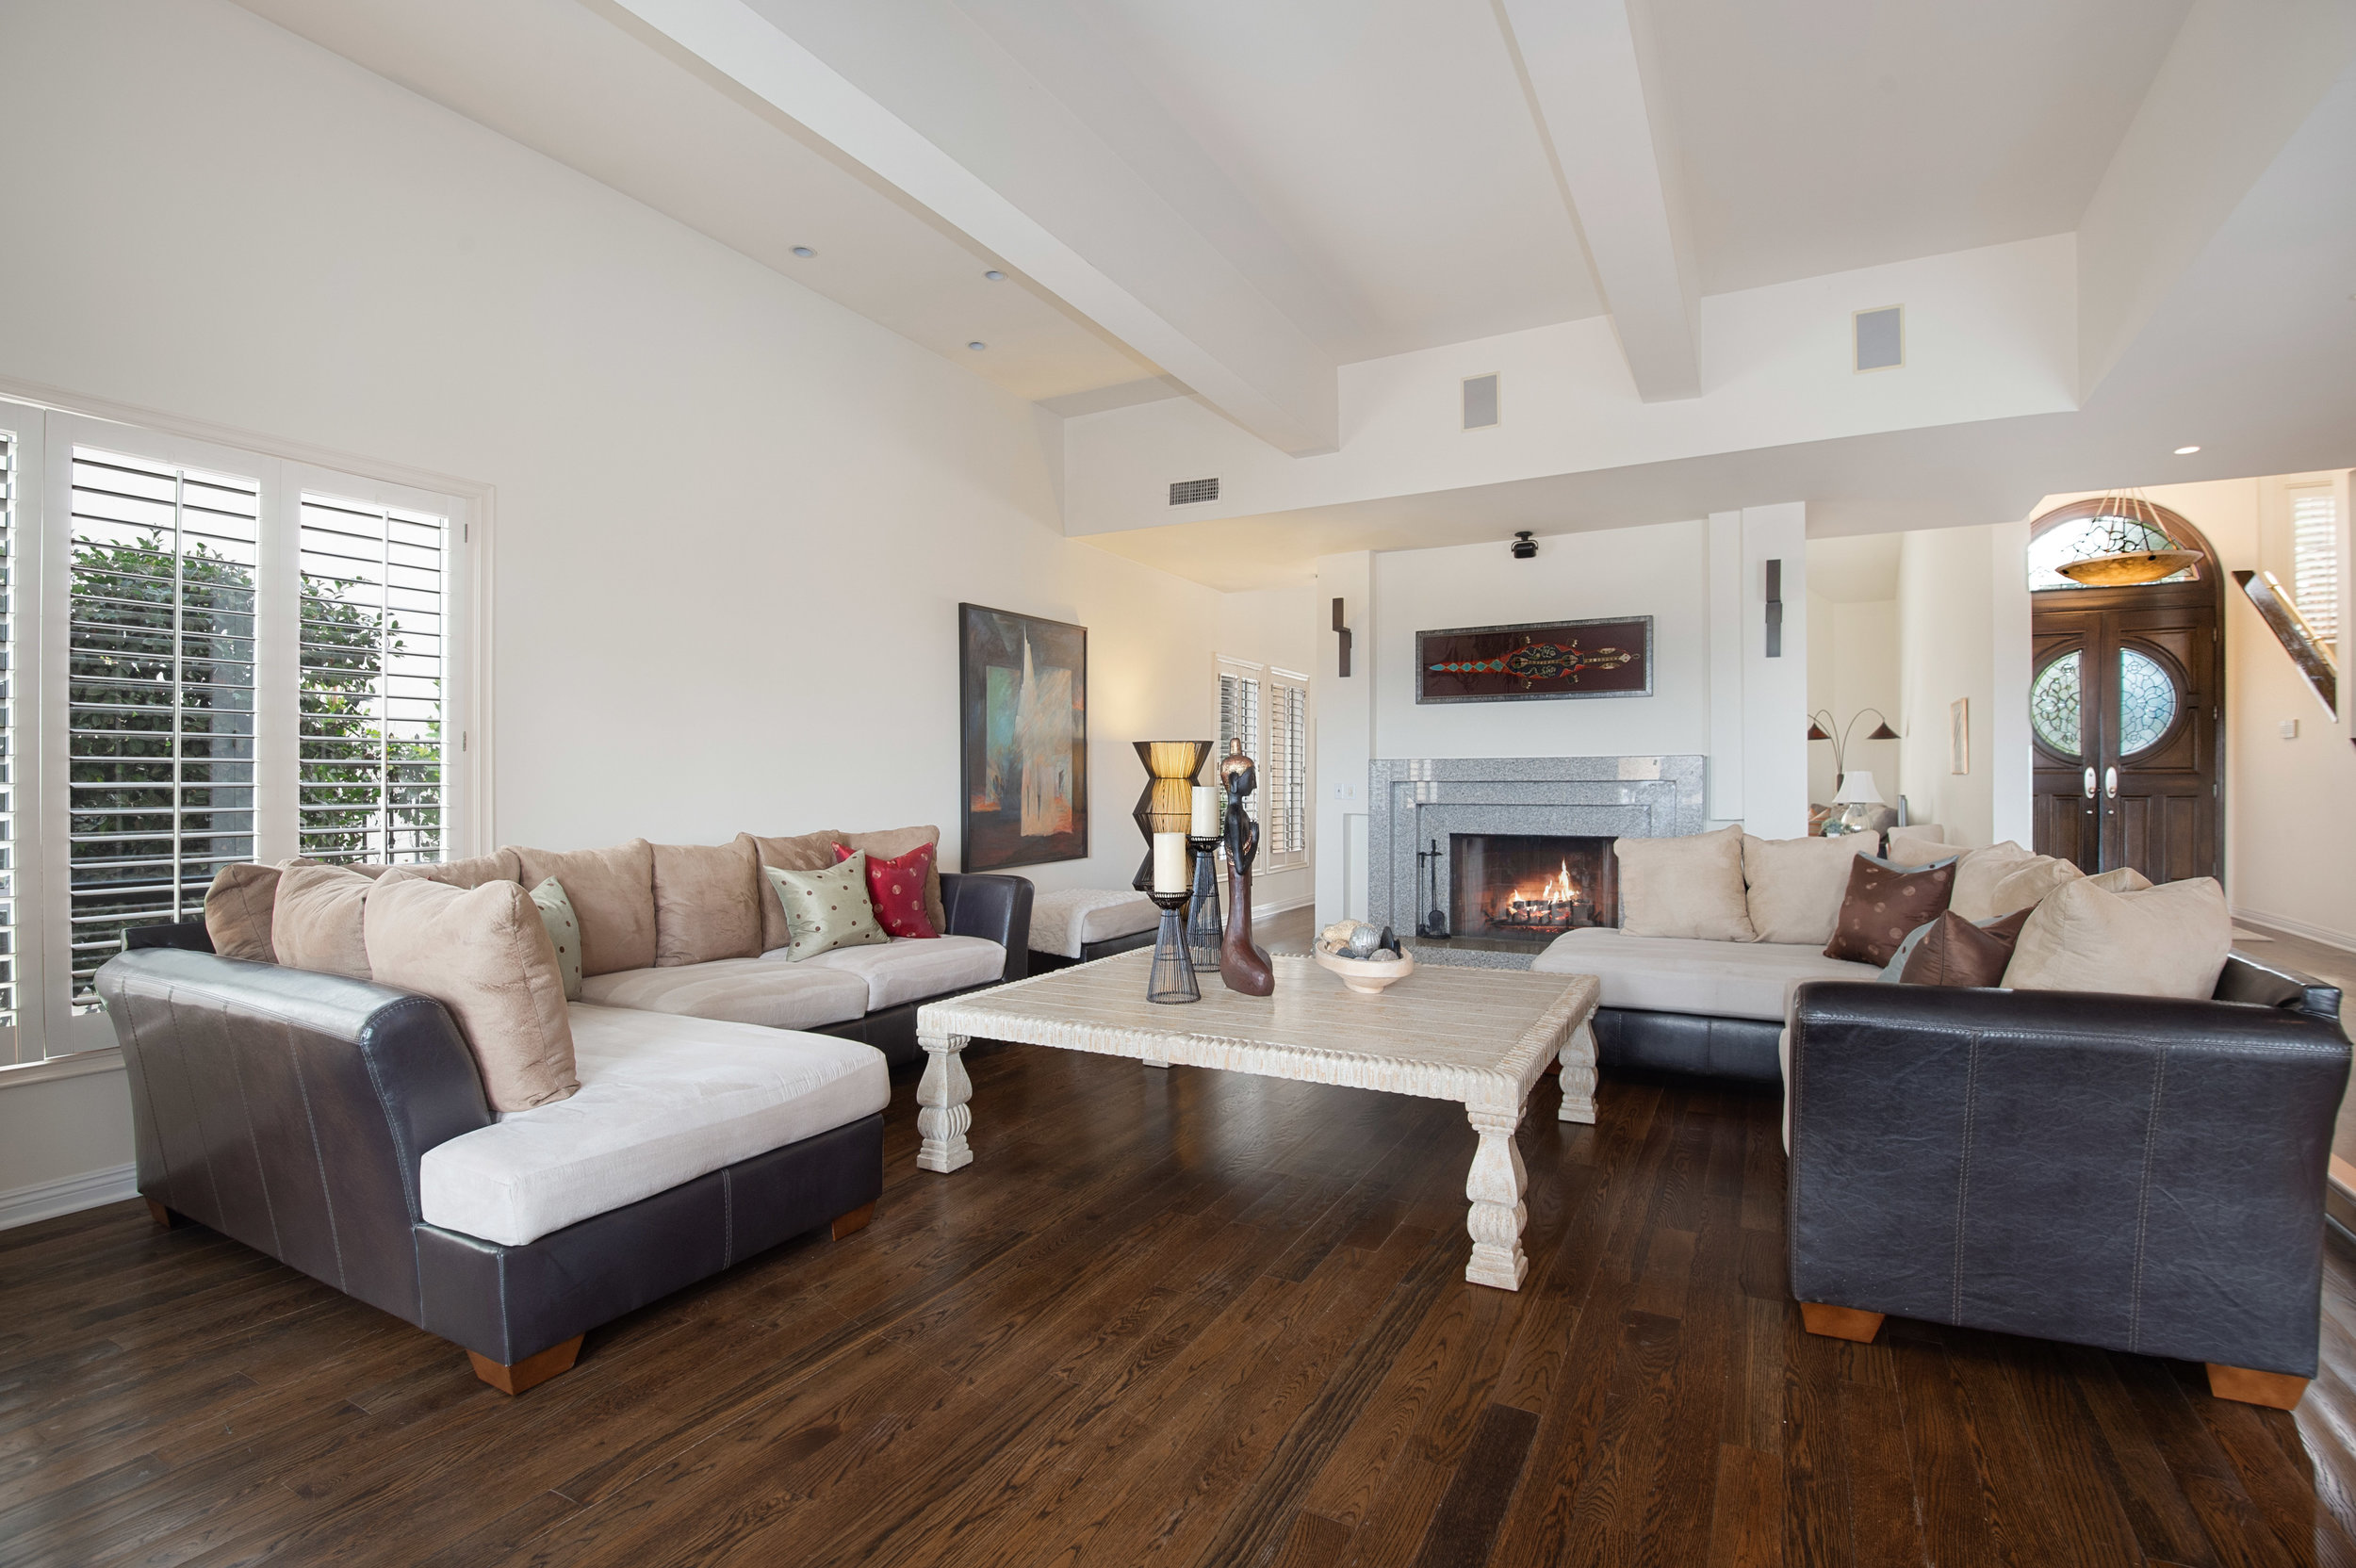 004 Living Room 12027 Talus Place Beverly Hills 90210 For Sale Lease The Malibu Life Team Luxury Real Estate.jpg